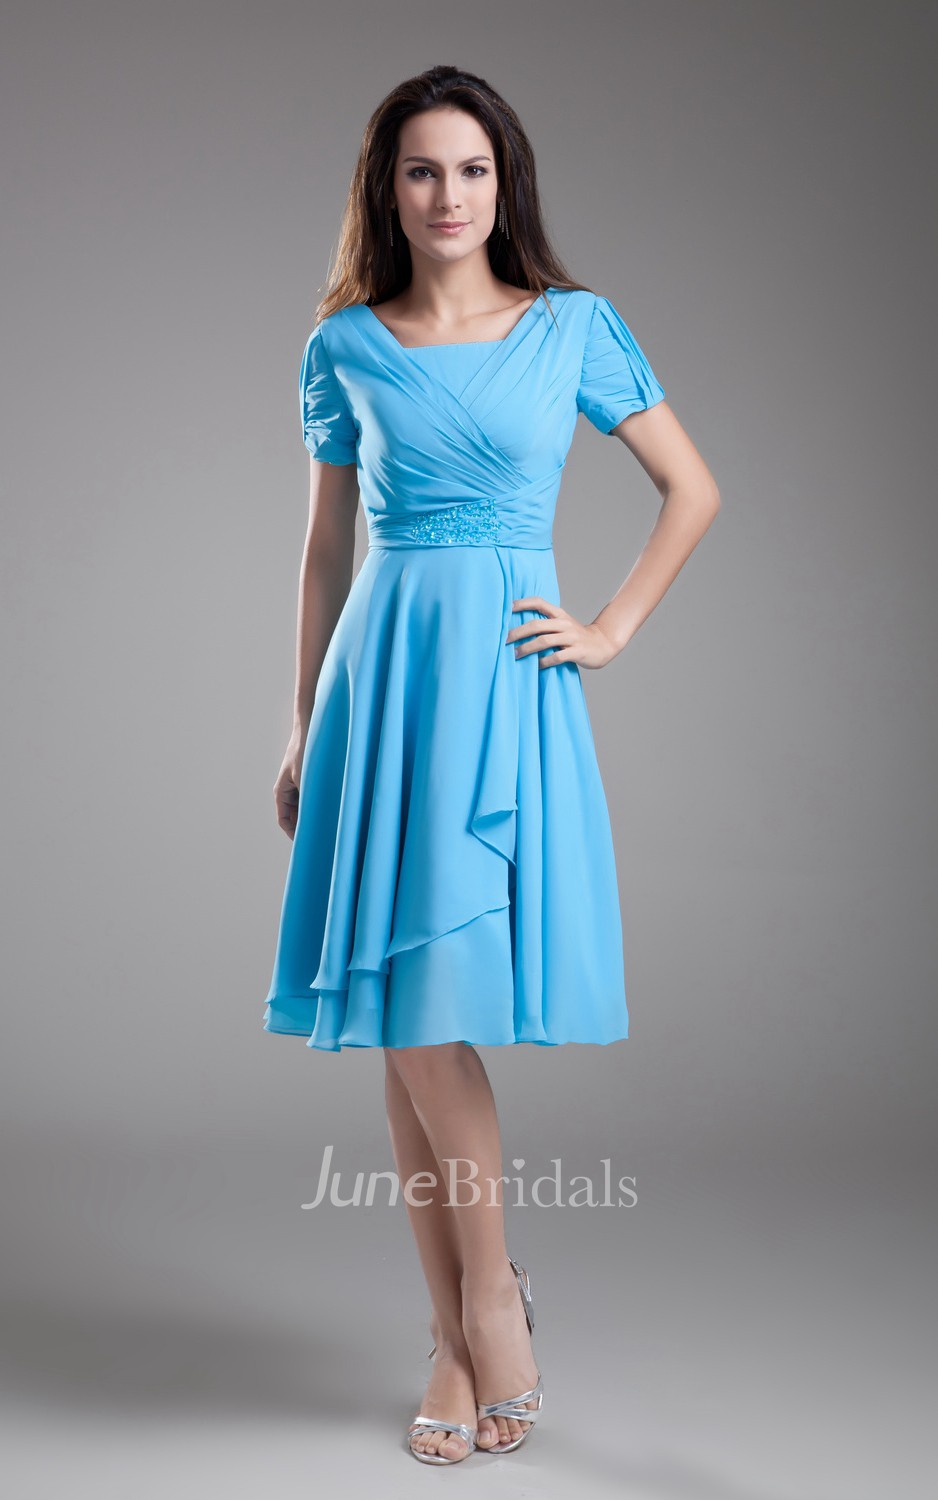 Chiffon Sleeve Square Neck Midi Dress With Draping June